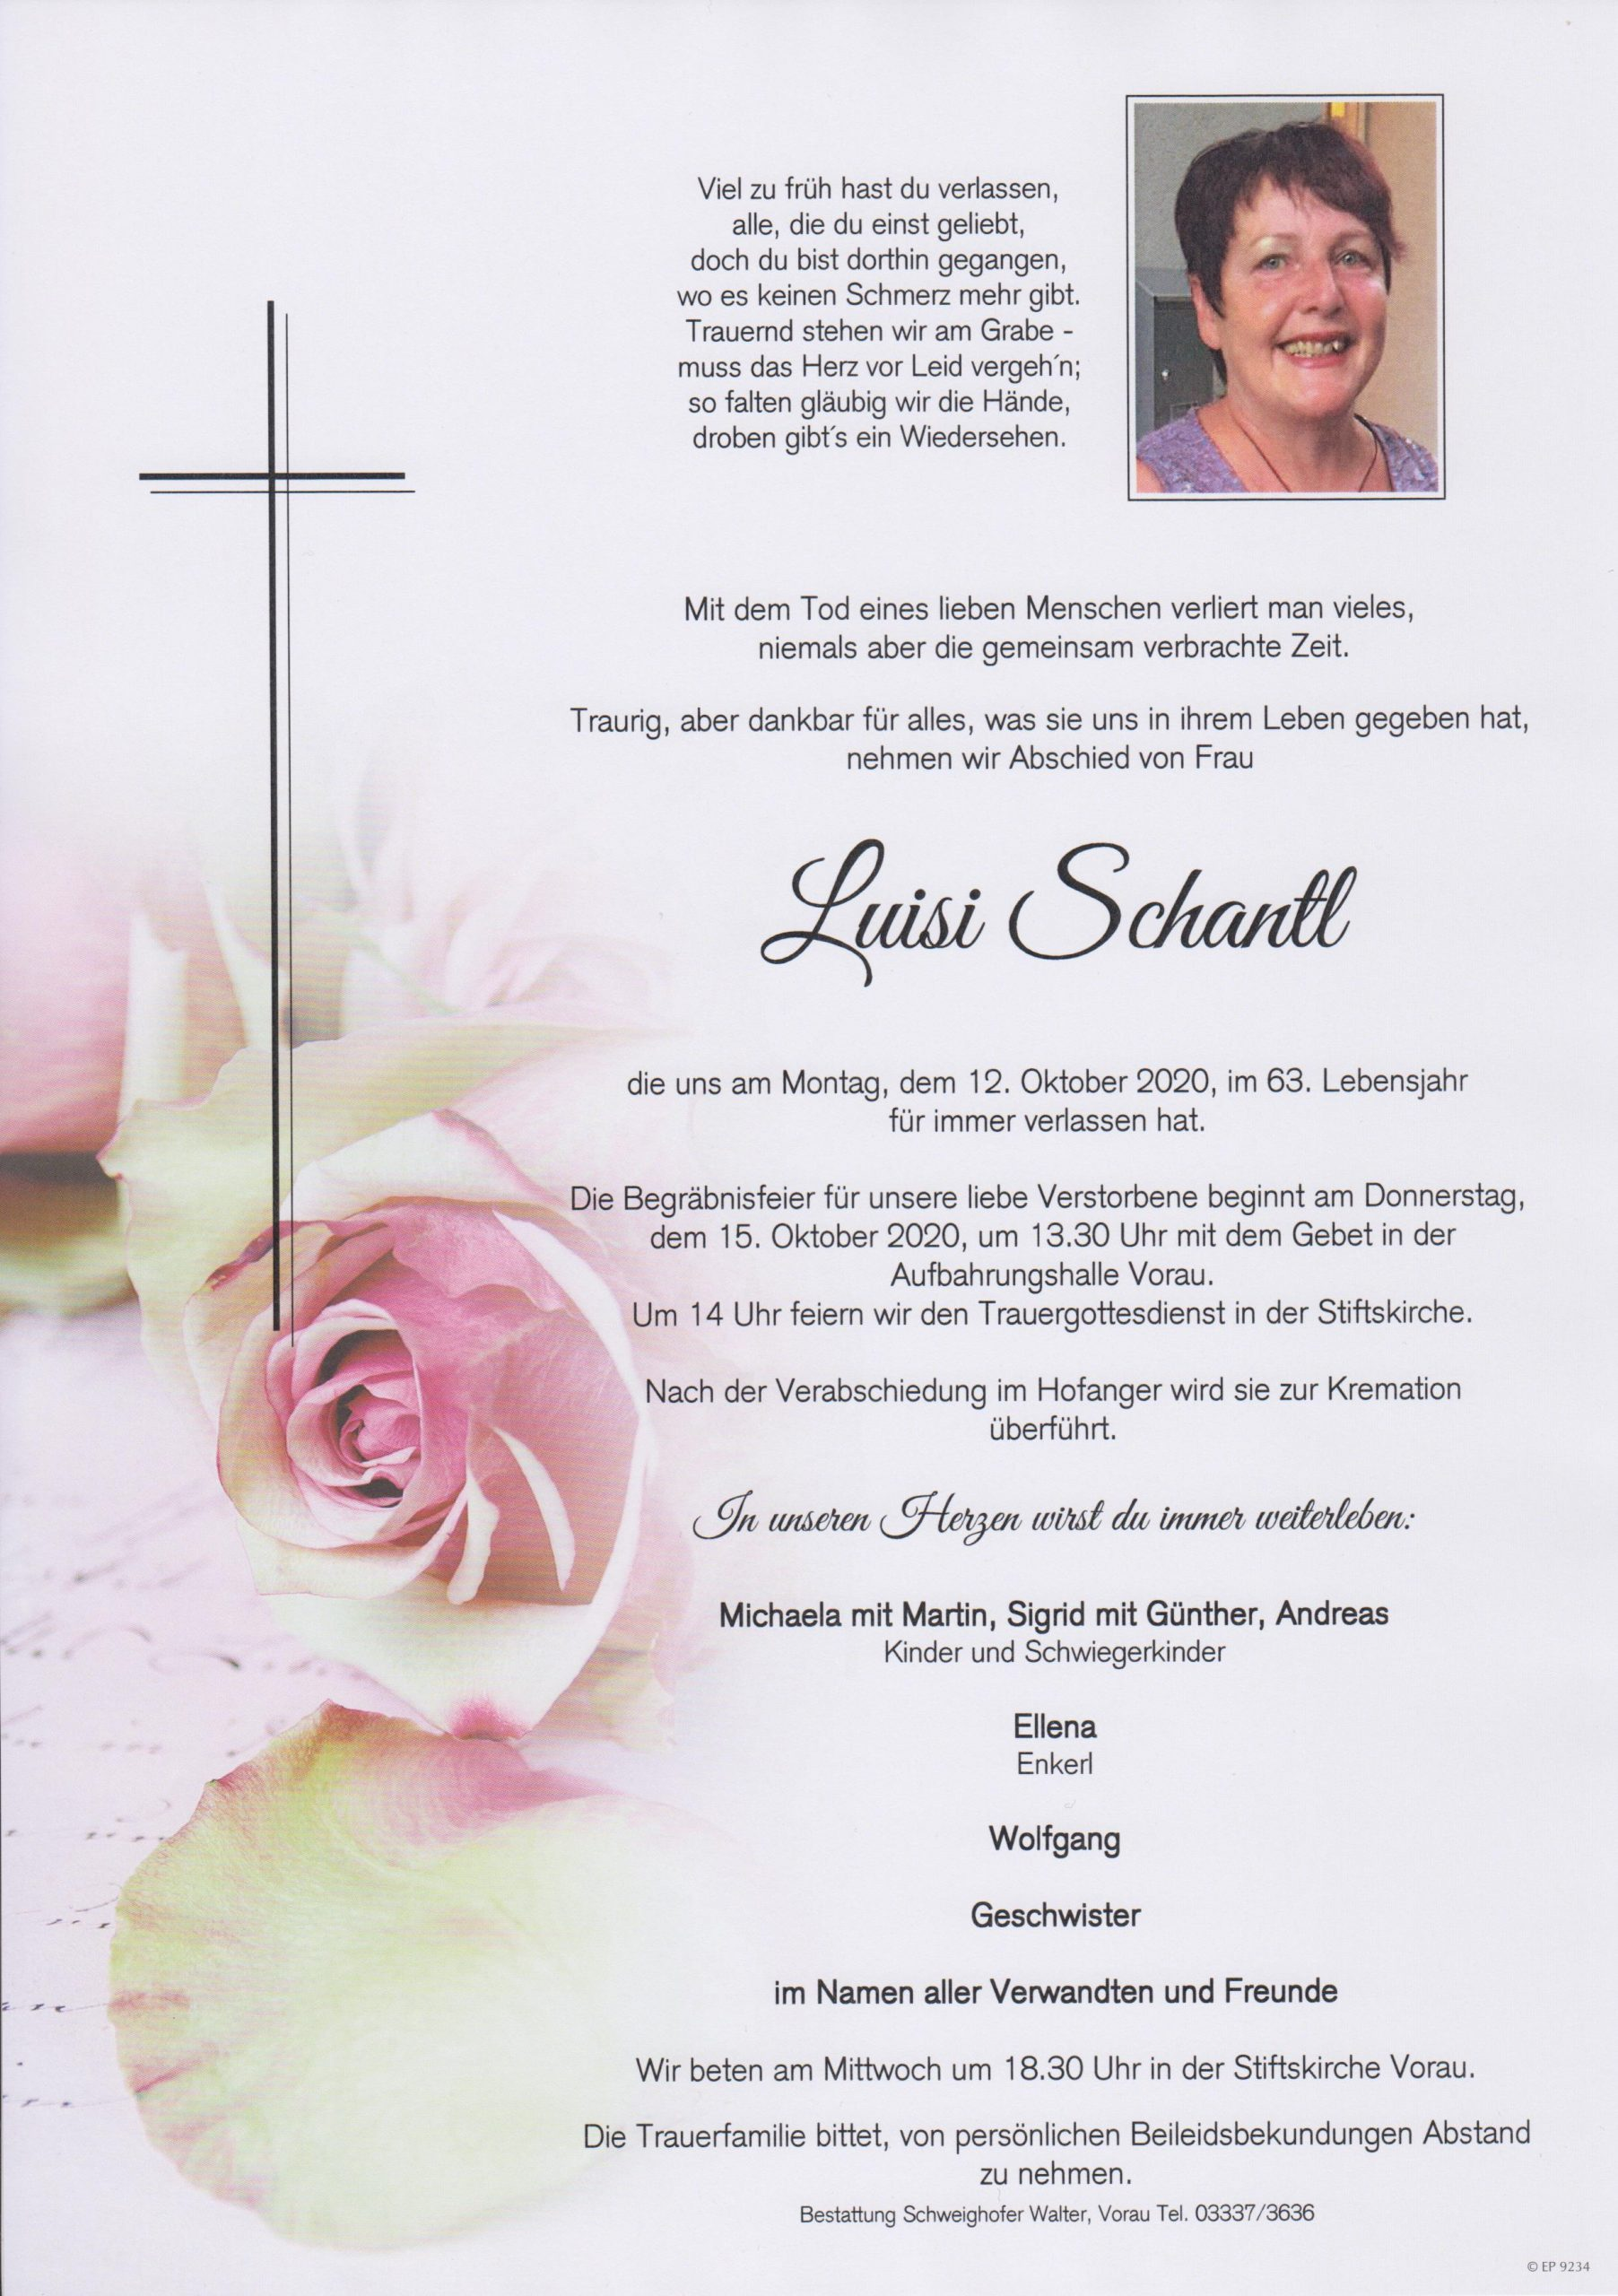 You are currently viewing Luisi Schantl